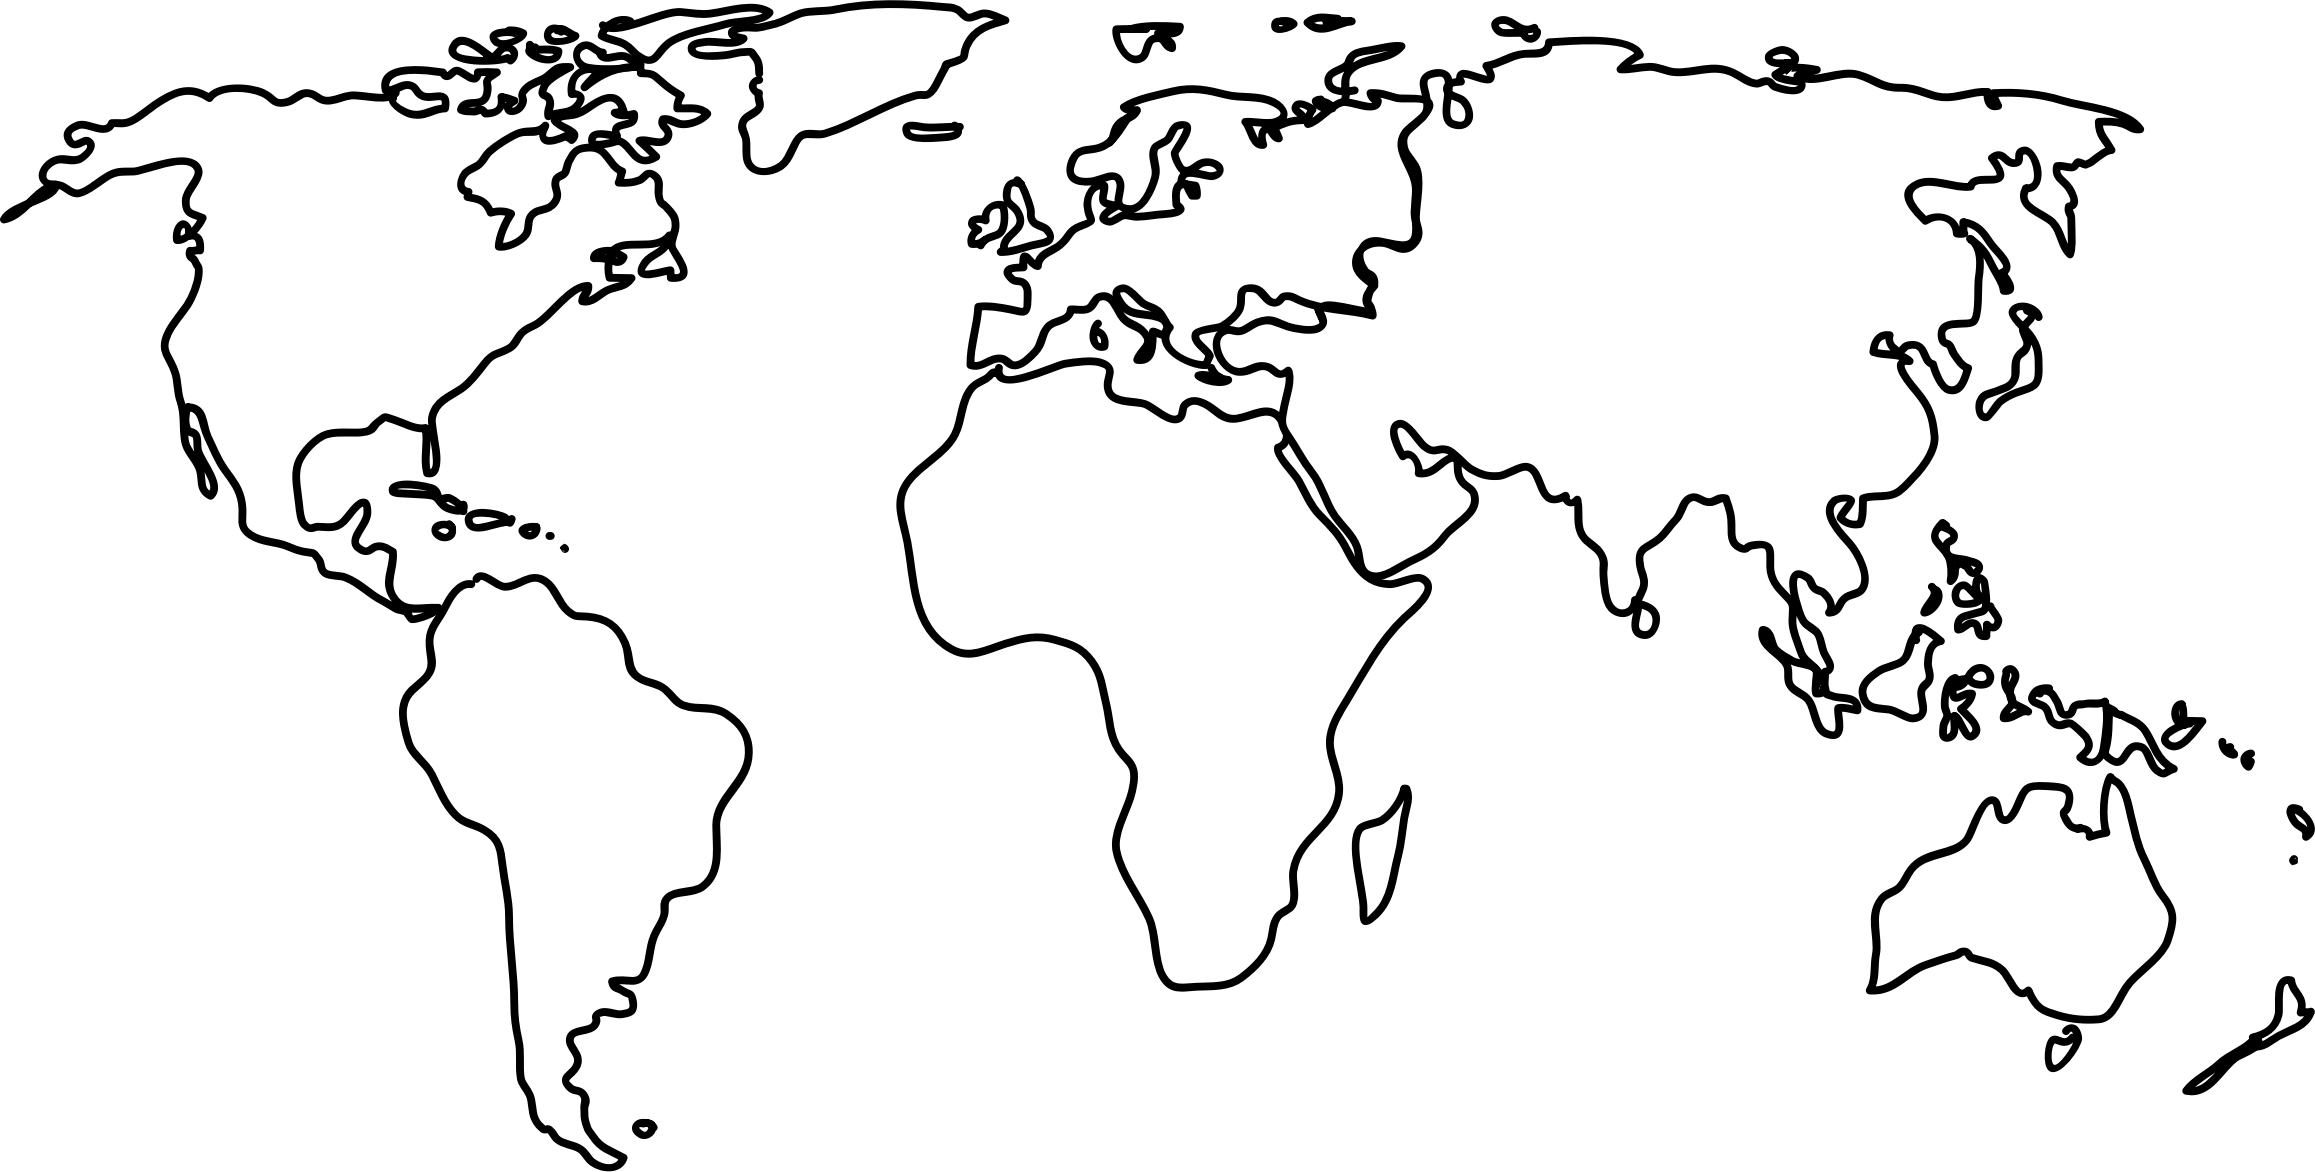 Continent clipart black and white World Collection outlines map Clipart